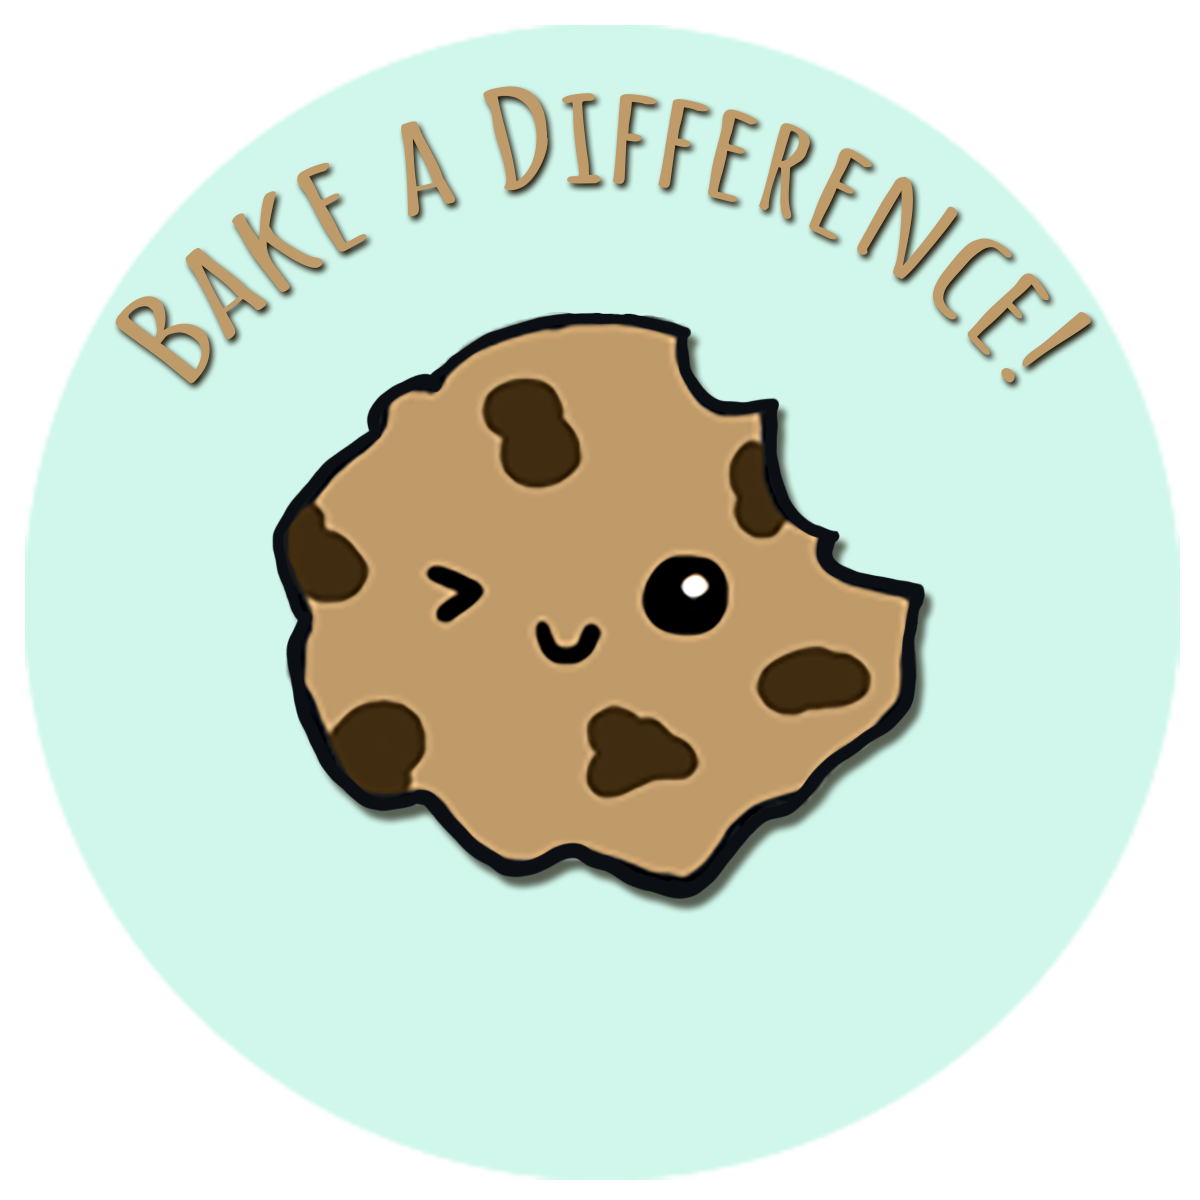 bake a difference.png